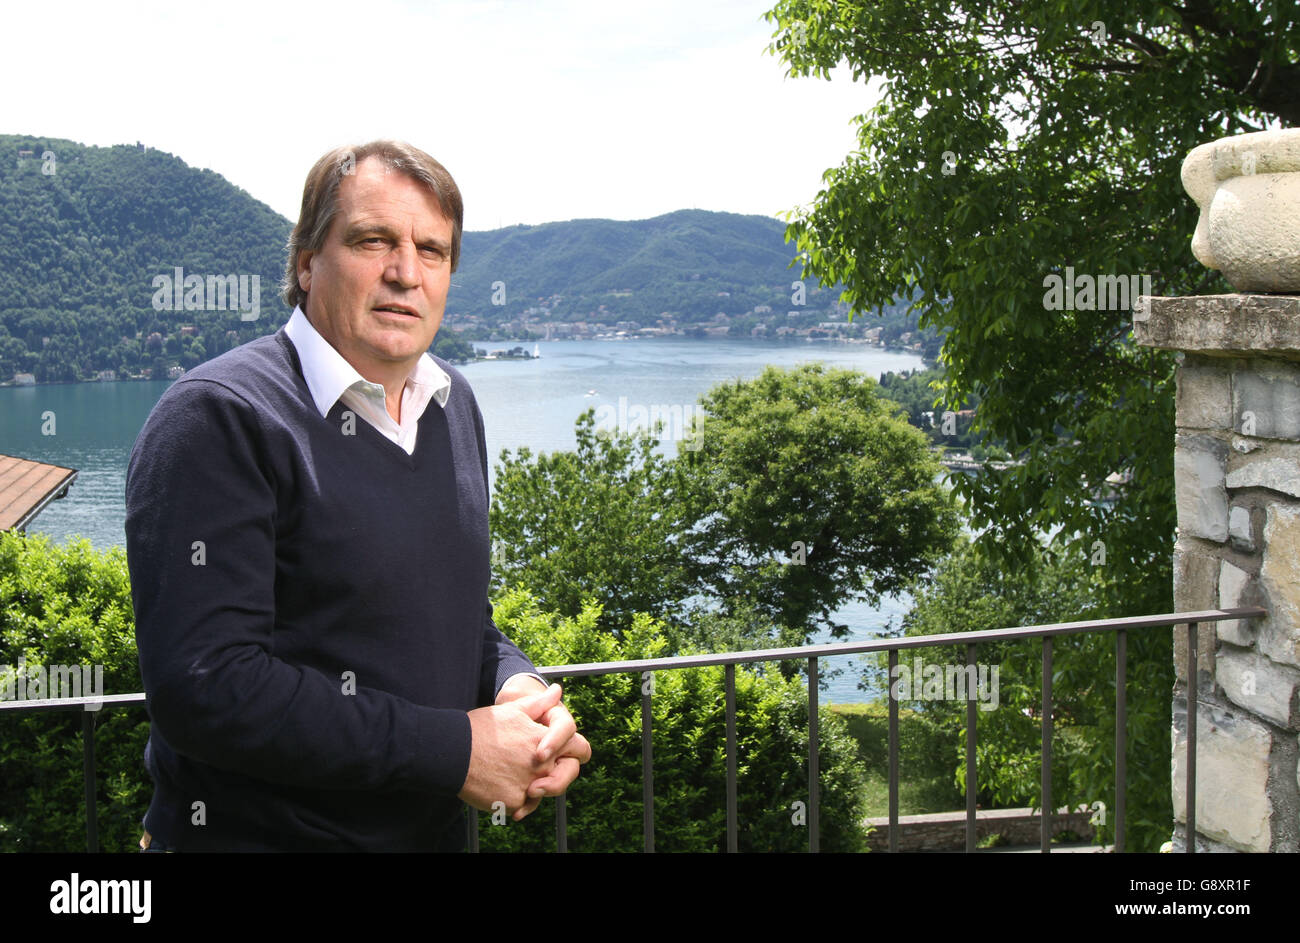 Marco Tardelli Feature Stock Royalty Free Image